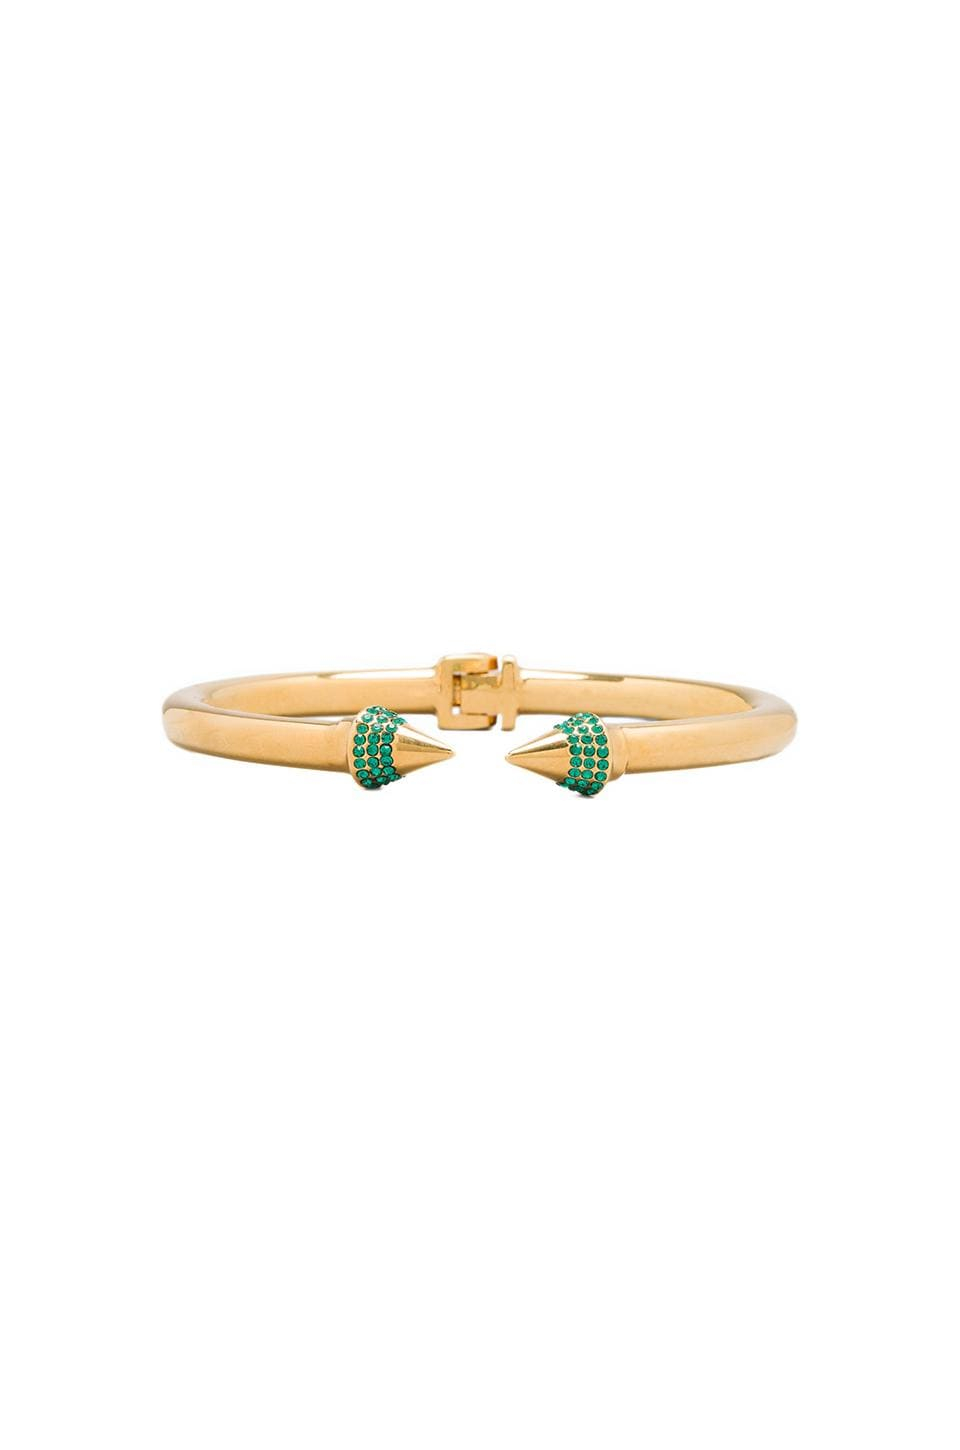 Vita Fede x REVOLVE Mini Titan Crystal Bracelet in Emerald/Gold